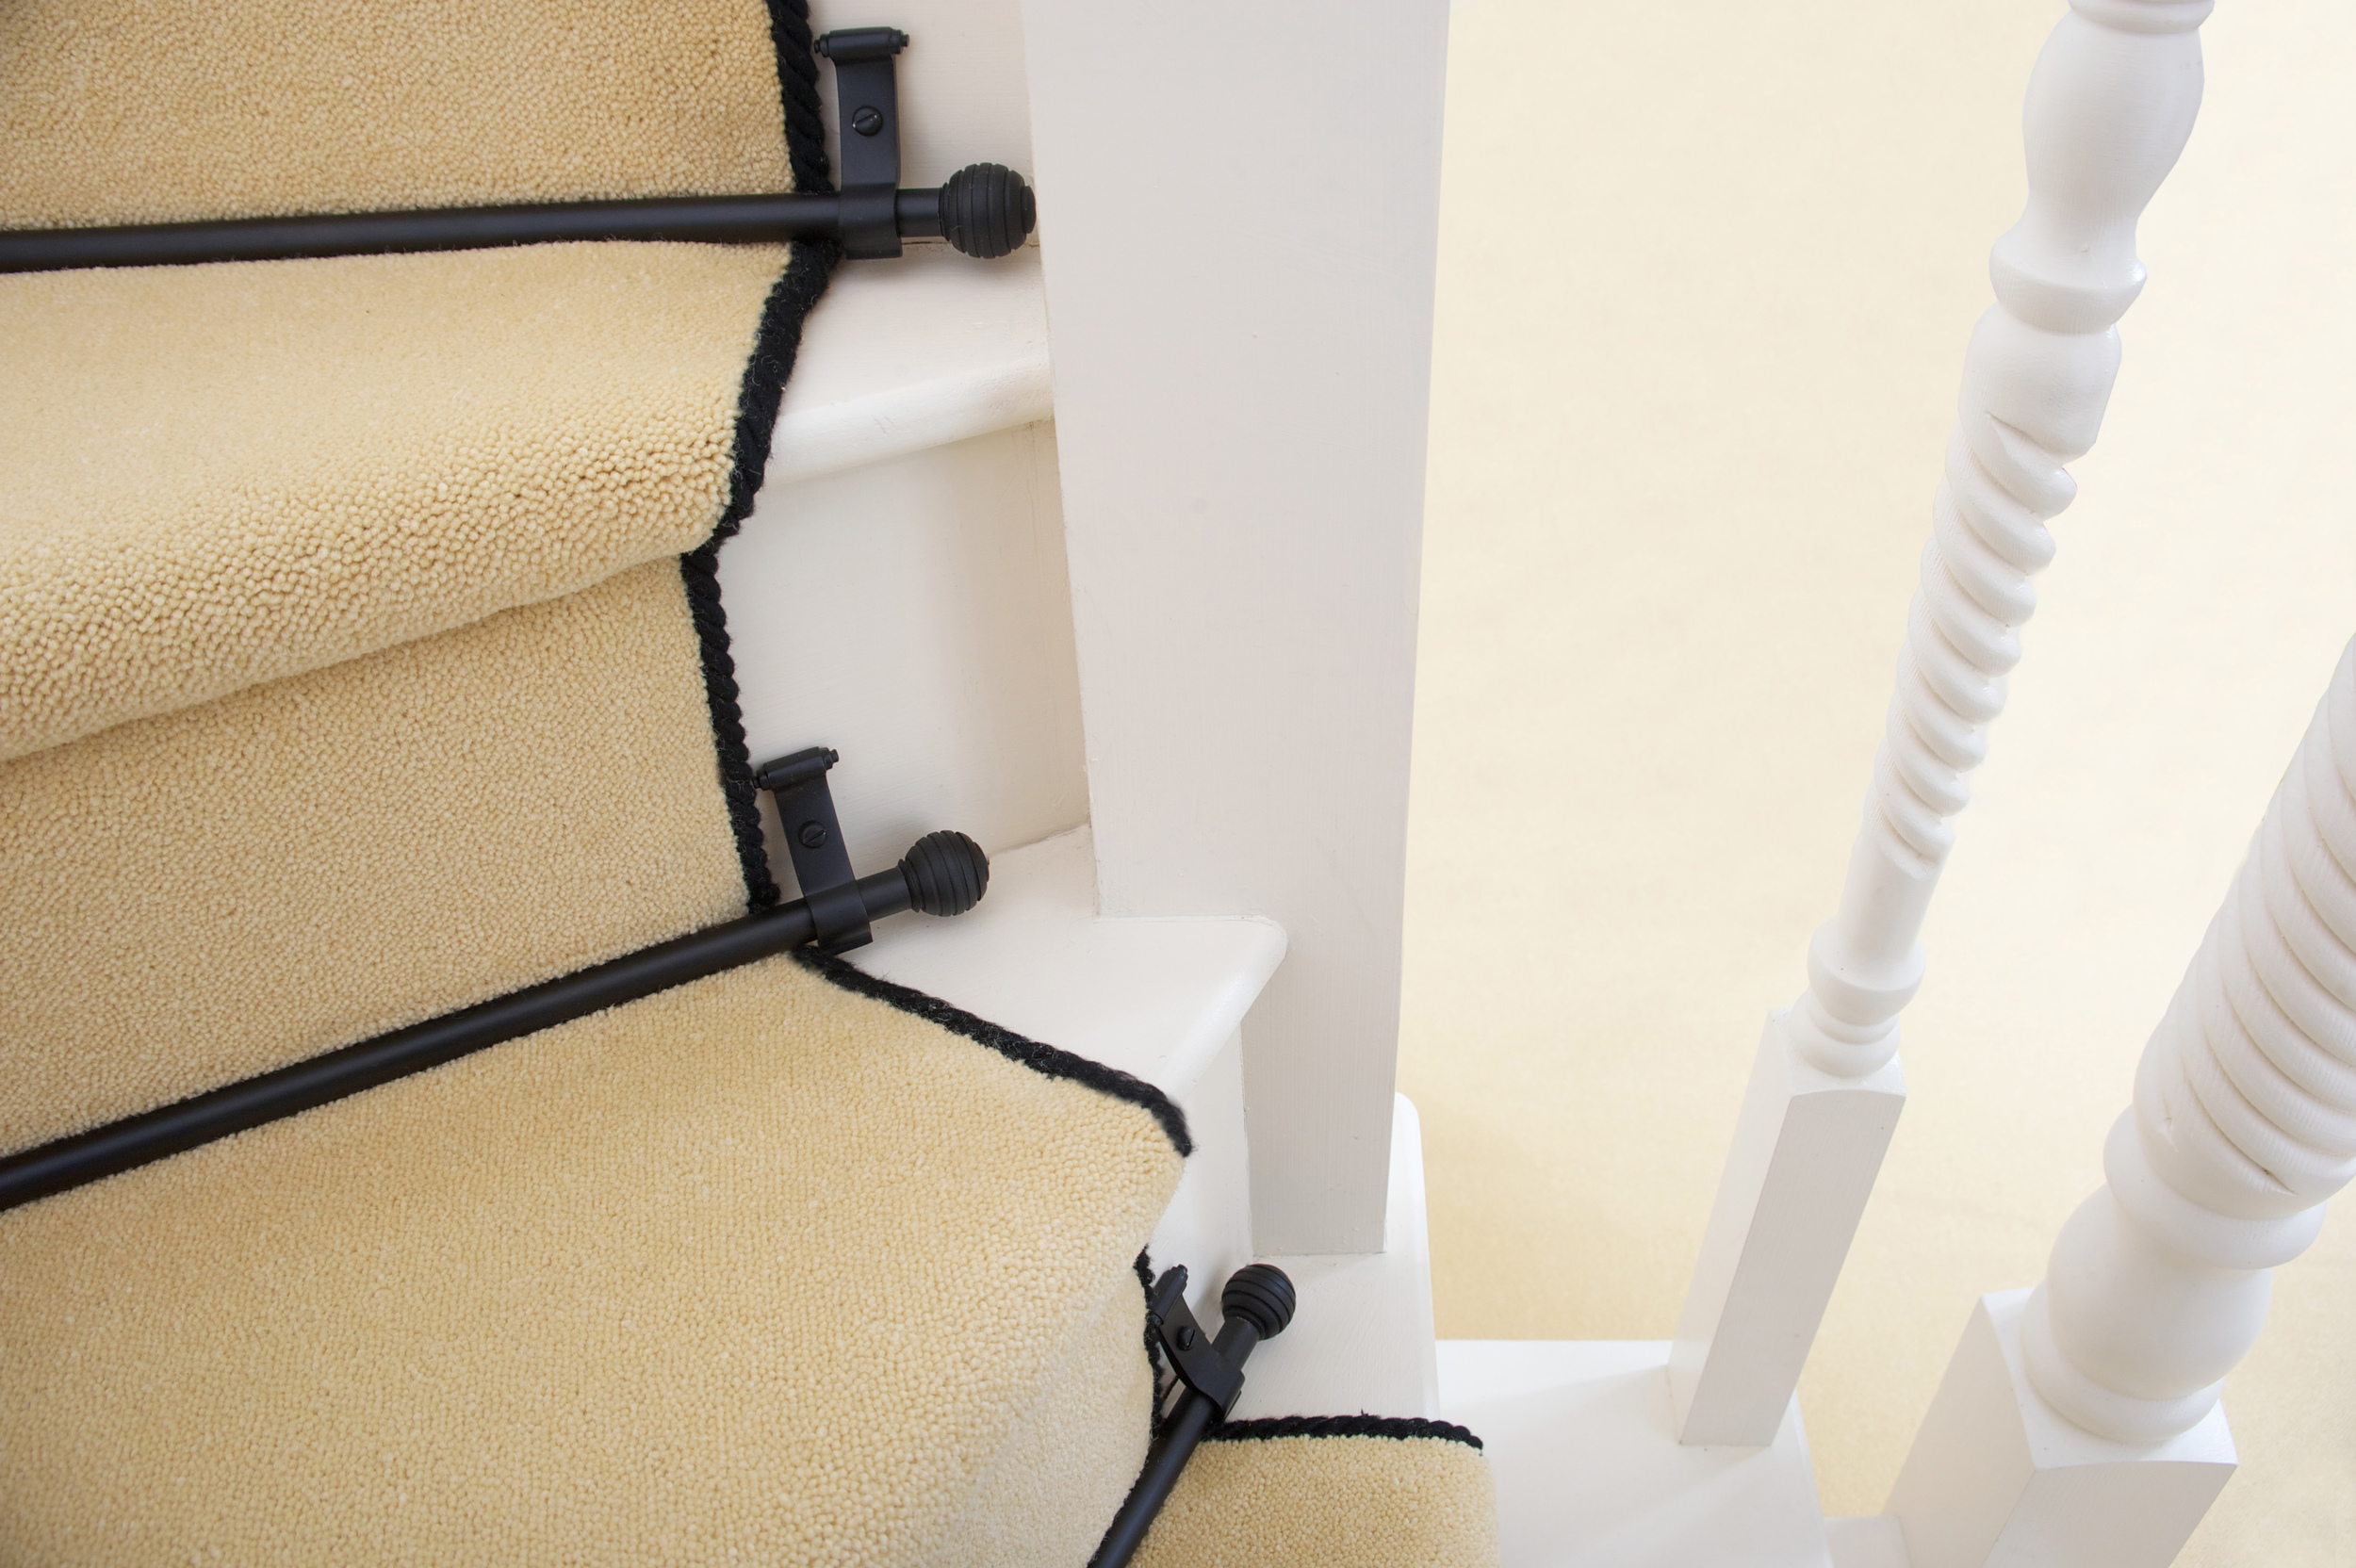 Another Elegant Solution To Fitting Stair Rods On Winder Carpets